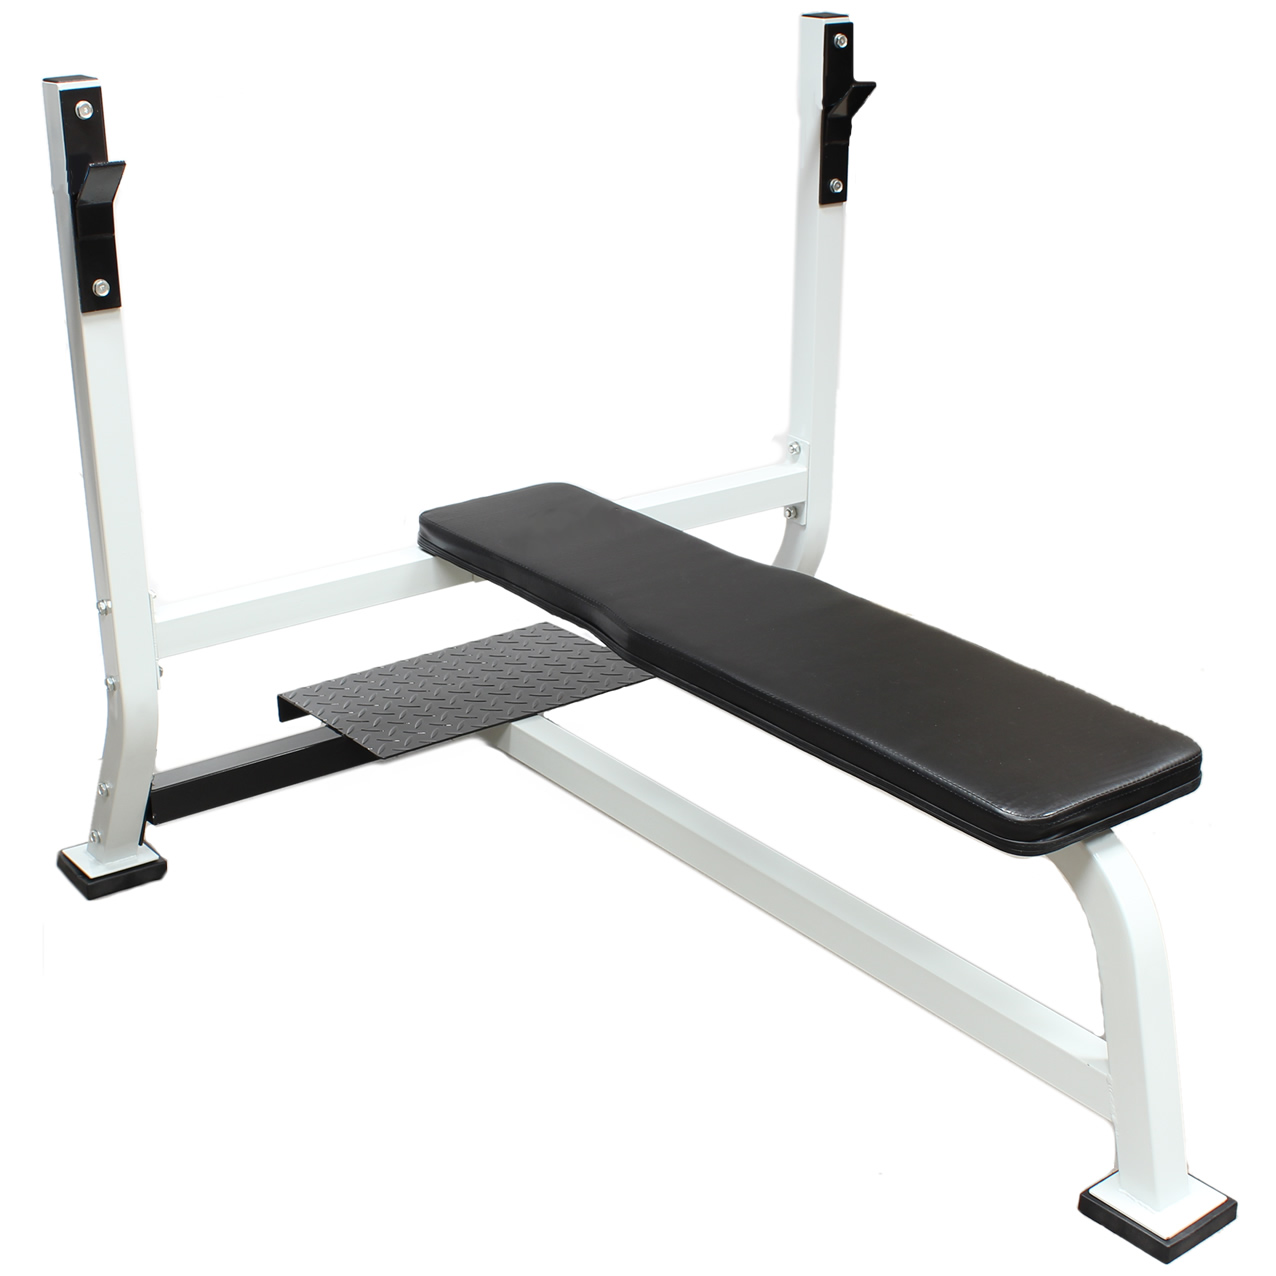 Bench Bar For Sale: GYM WEIGHT LIFTING BENCH FOR SHOULDER/CHEST PRESS HOME